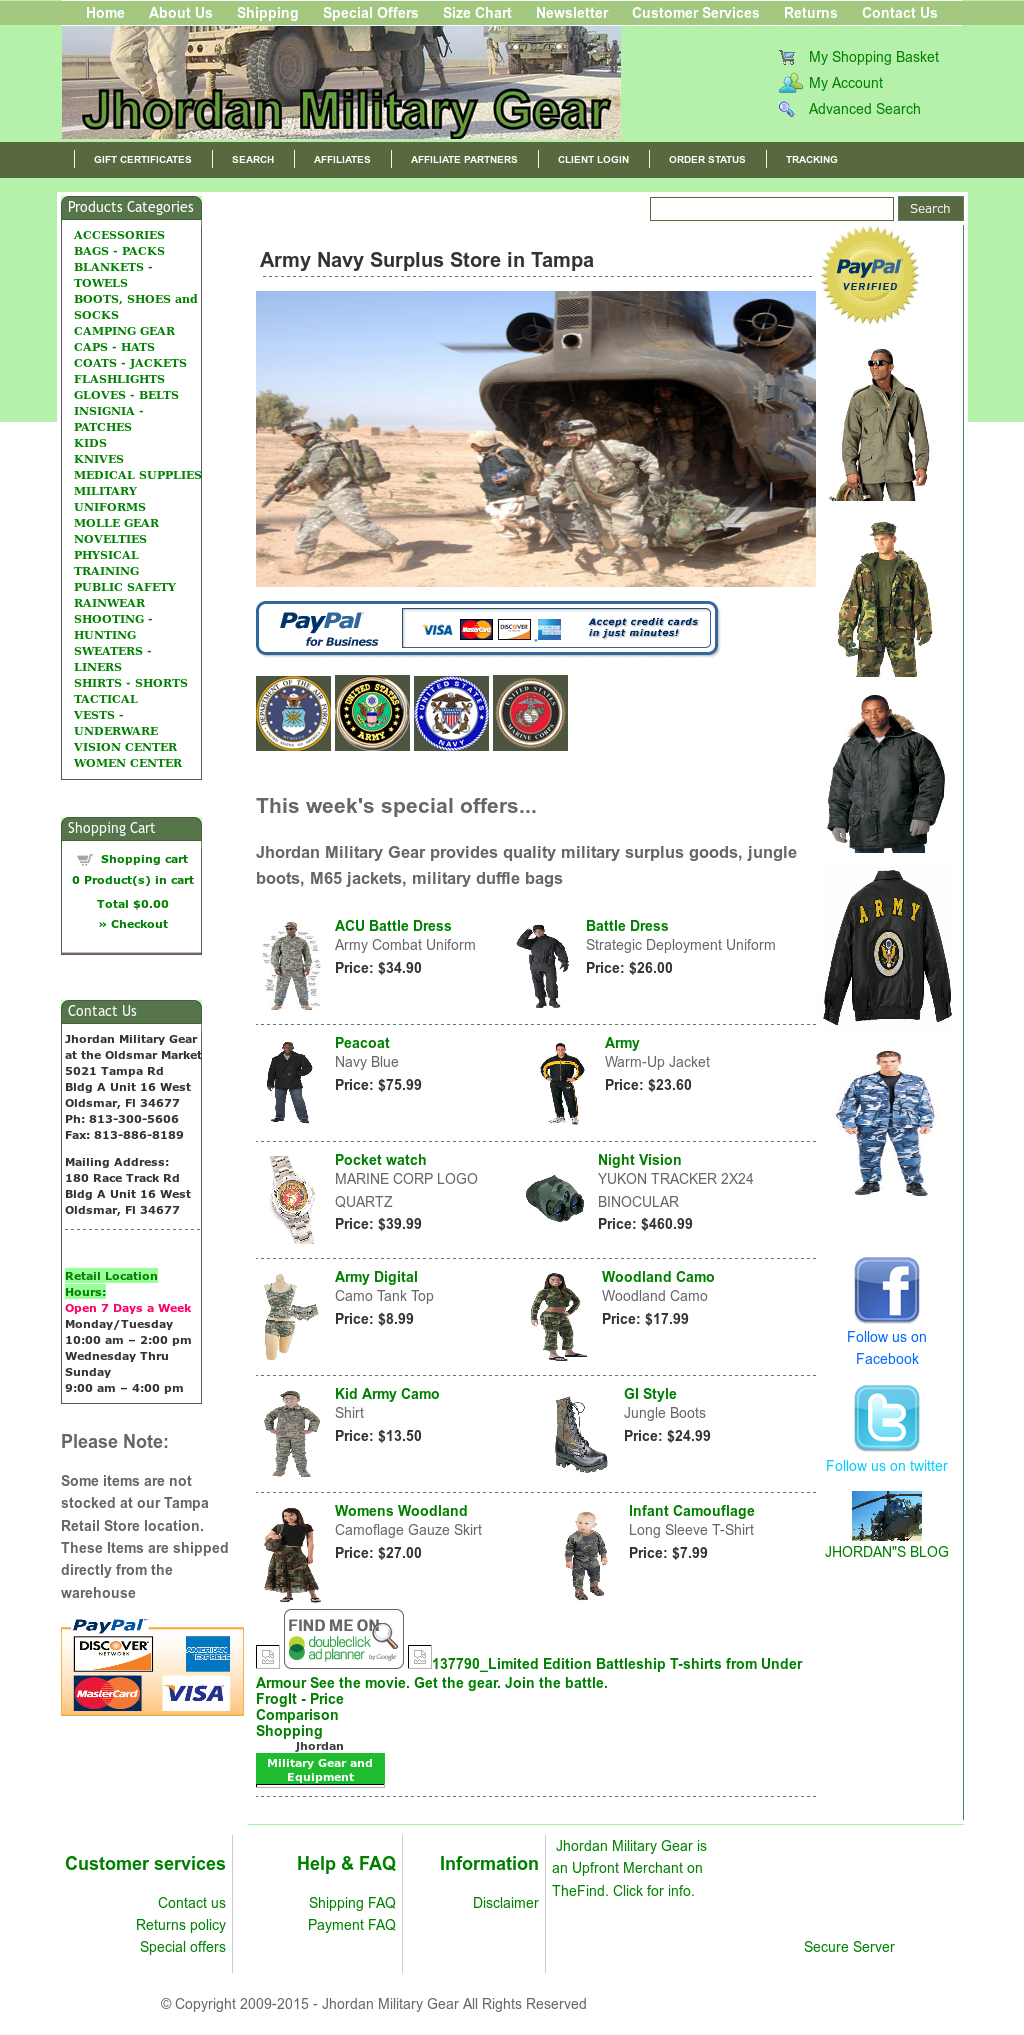 Jhordan Military Gear Competitors, Revenue and Employees